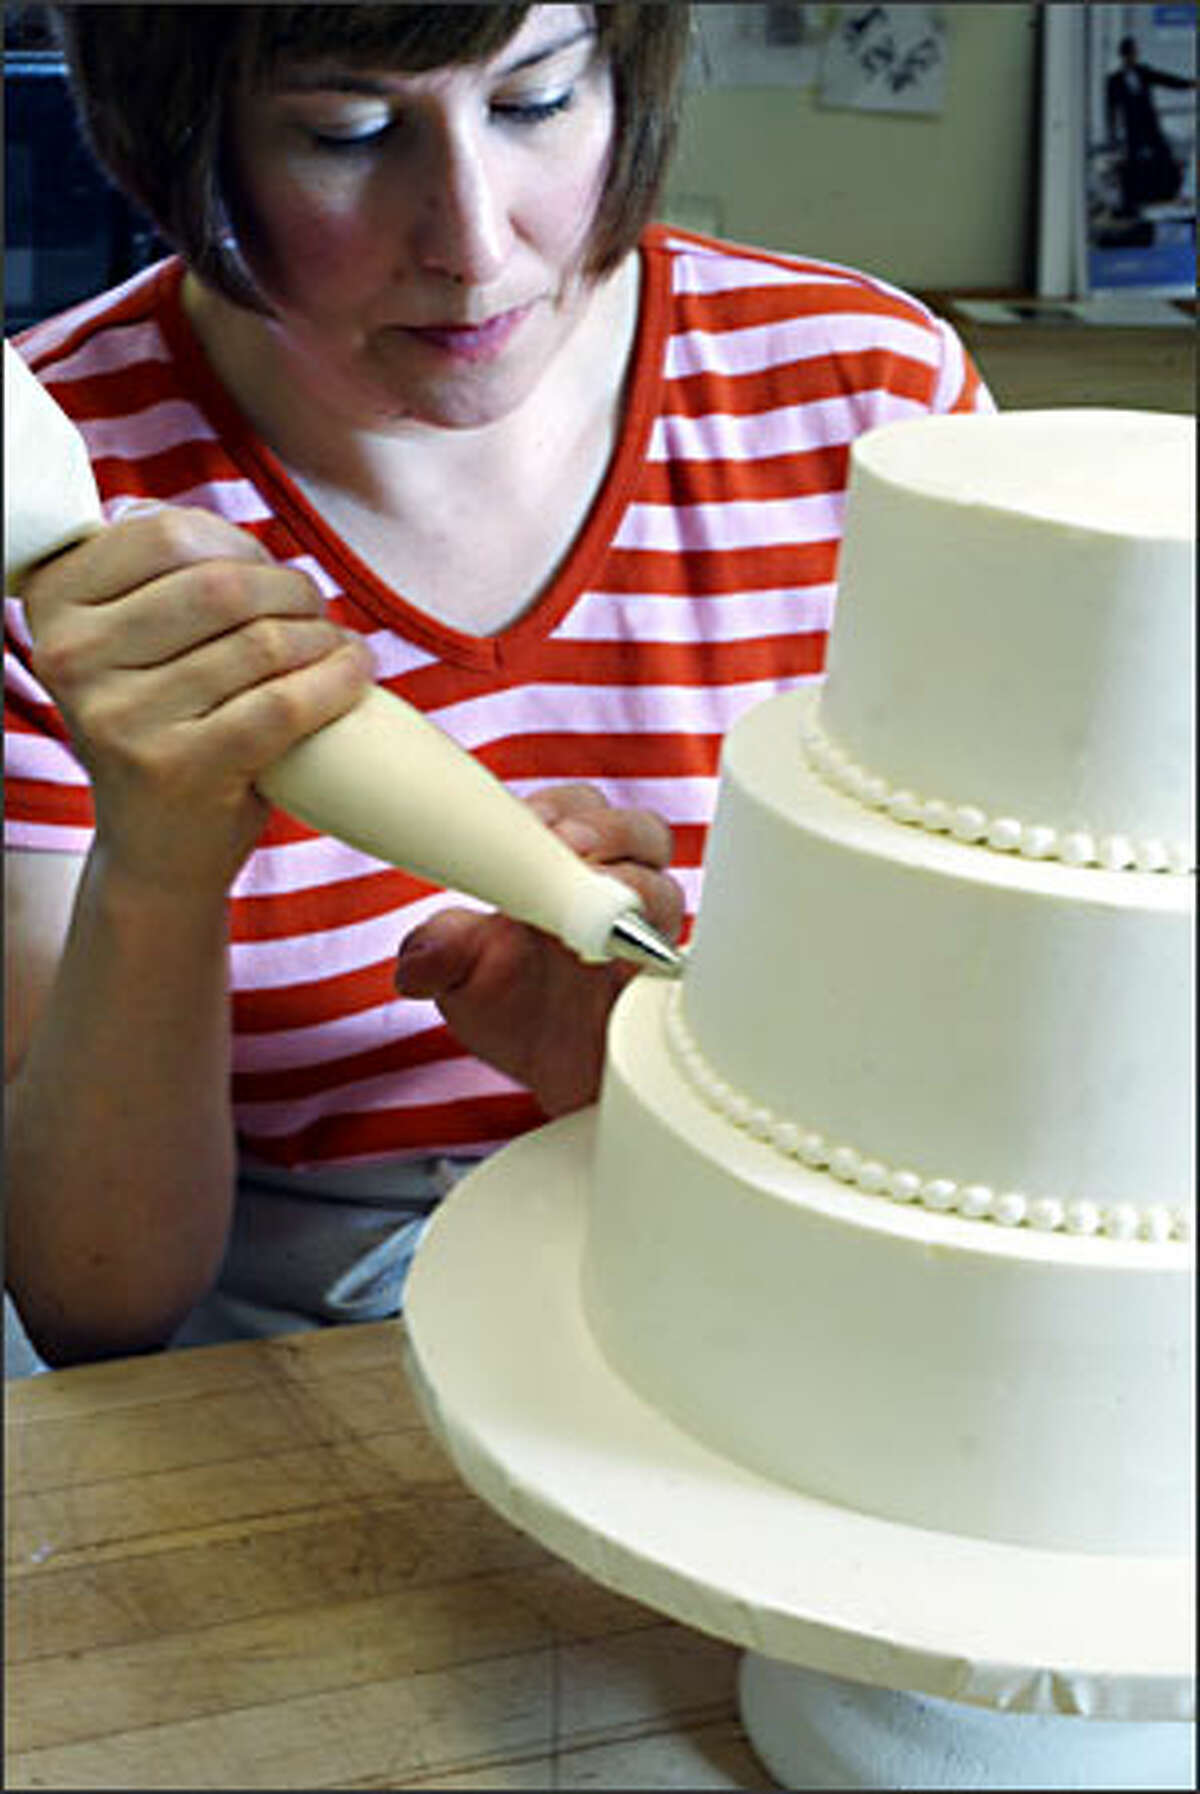 Bonnie Lyons, pastry chef and owner of New Renaissance Cakes, works piping beads around one of her cakes. This style is an example of the starting-price cake. It costs $272, with delivery included, and serves 64.